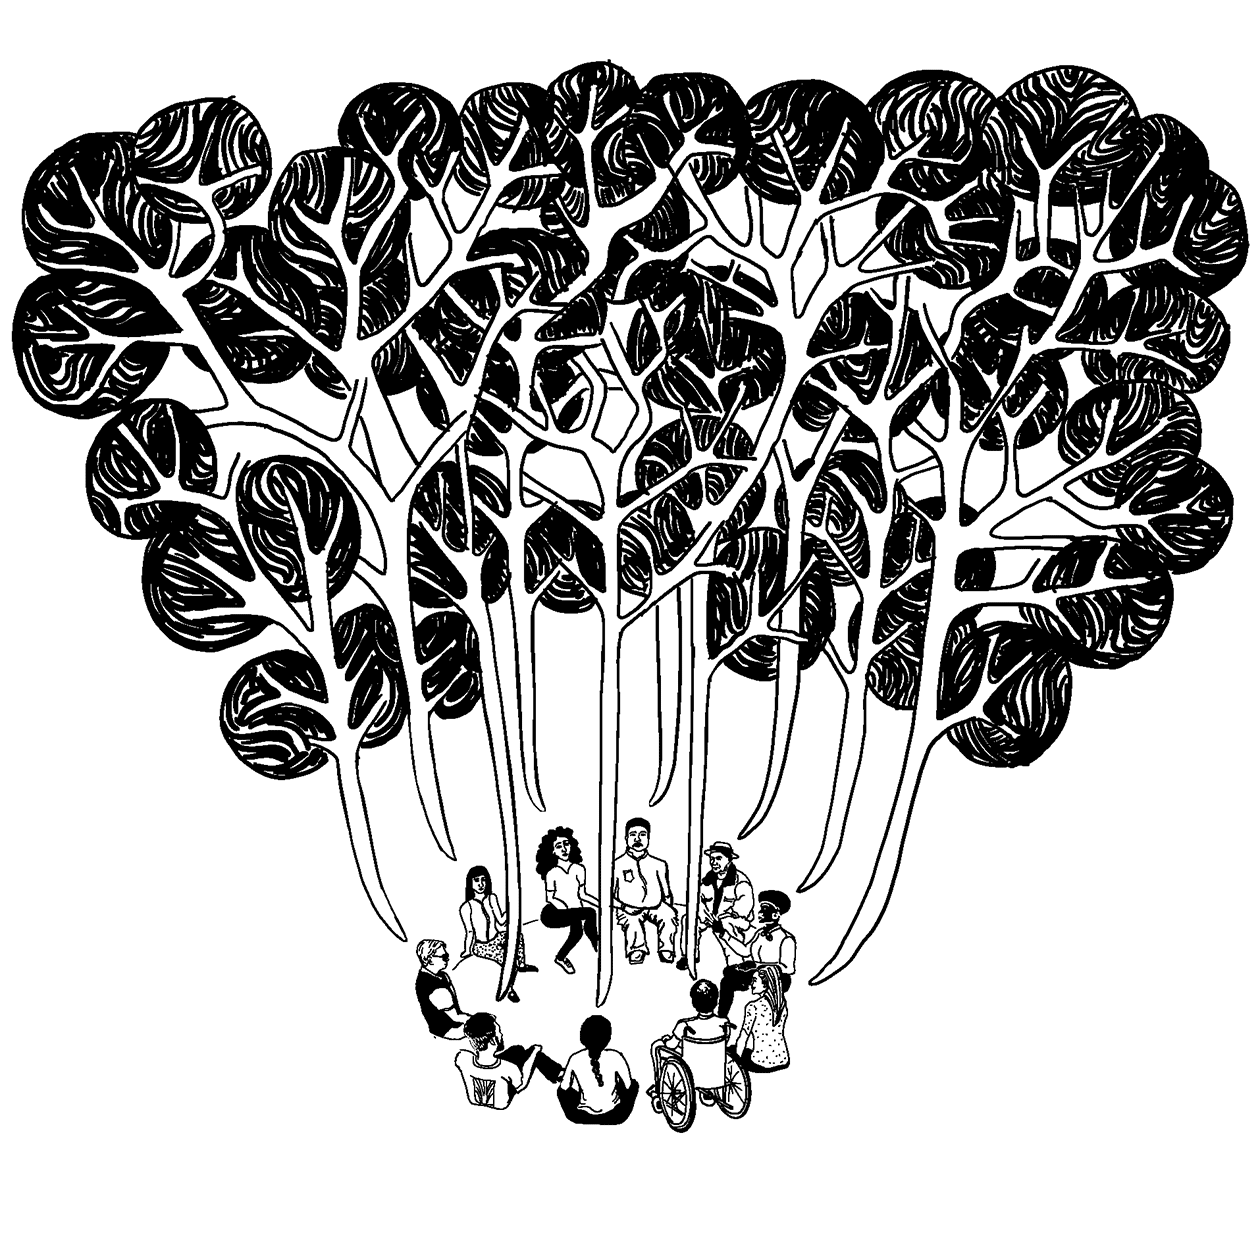 Black and white drawing showing a diverse group of community residents sitting in a circle having a conversation. Conversation bubbles are coming out from each person, and above the group the conversation bubbles are interminging to form trees in a forest.